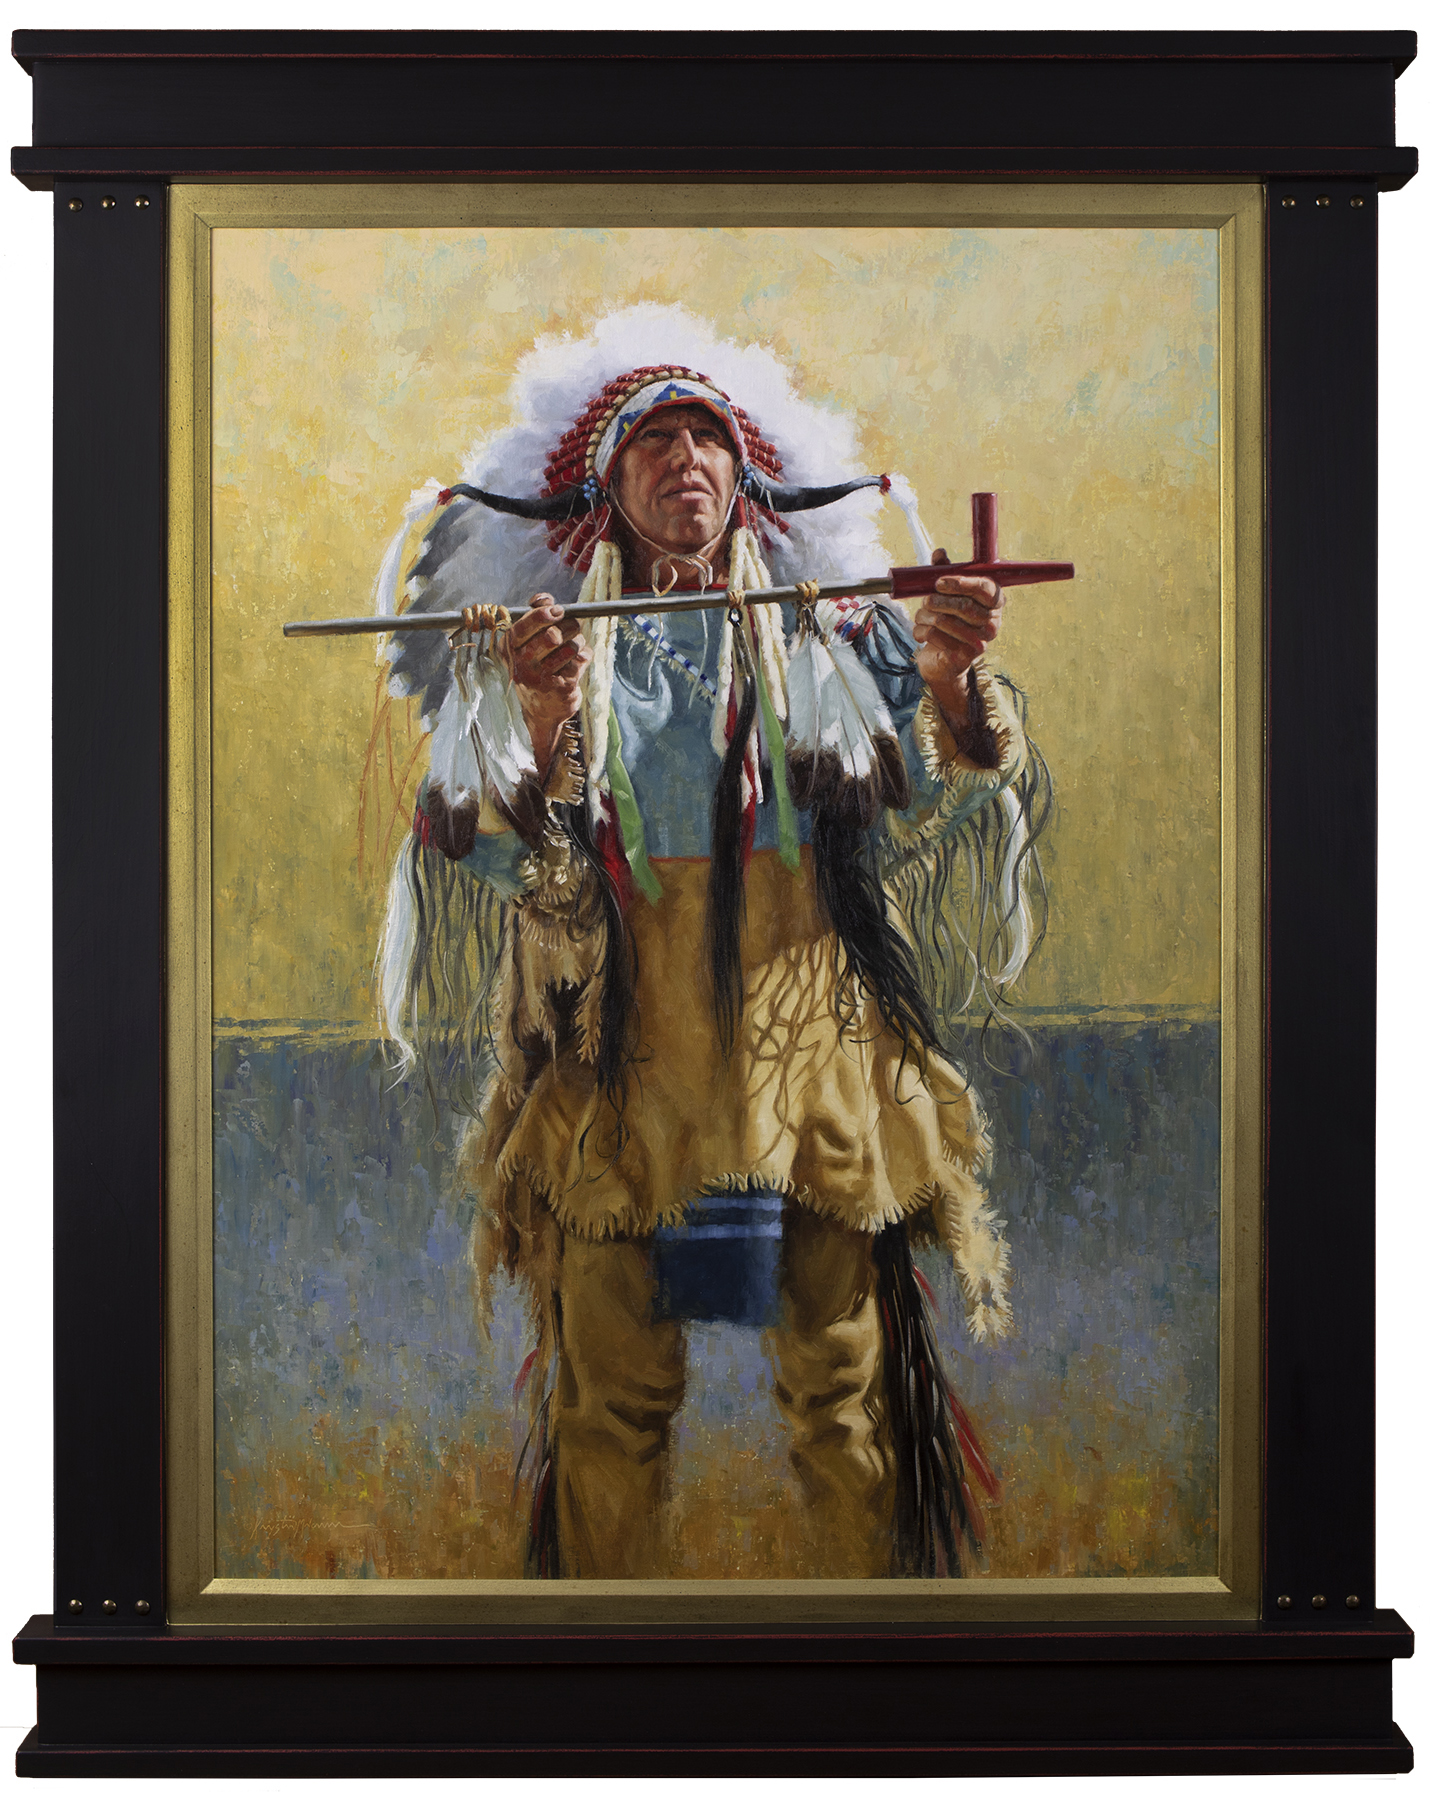 Portrait of Native American man.